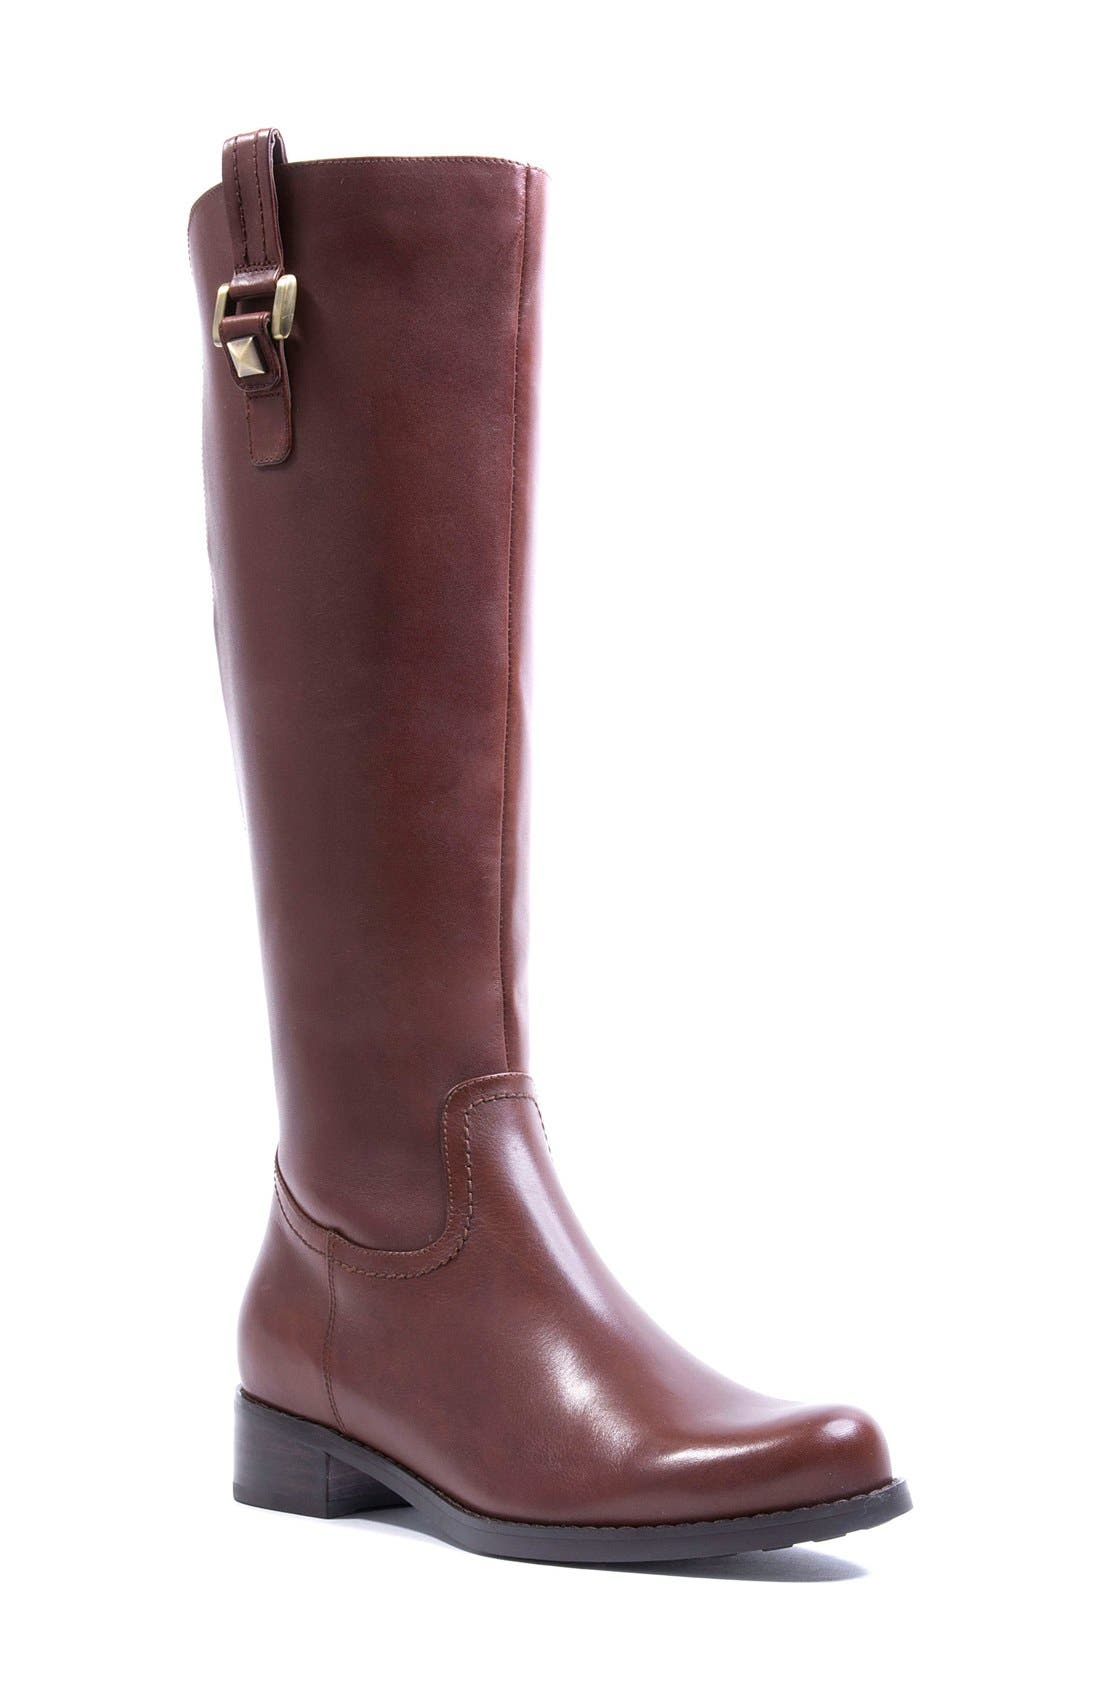 'Velvet' Waterproof Riding Boot,                         Main,                         color, Butterscotch Leather